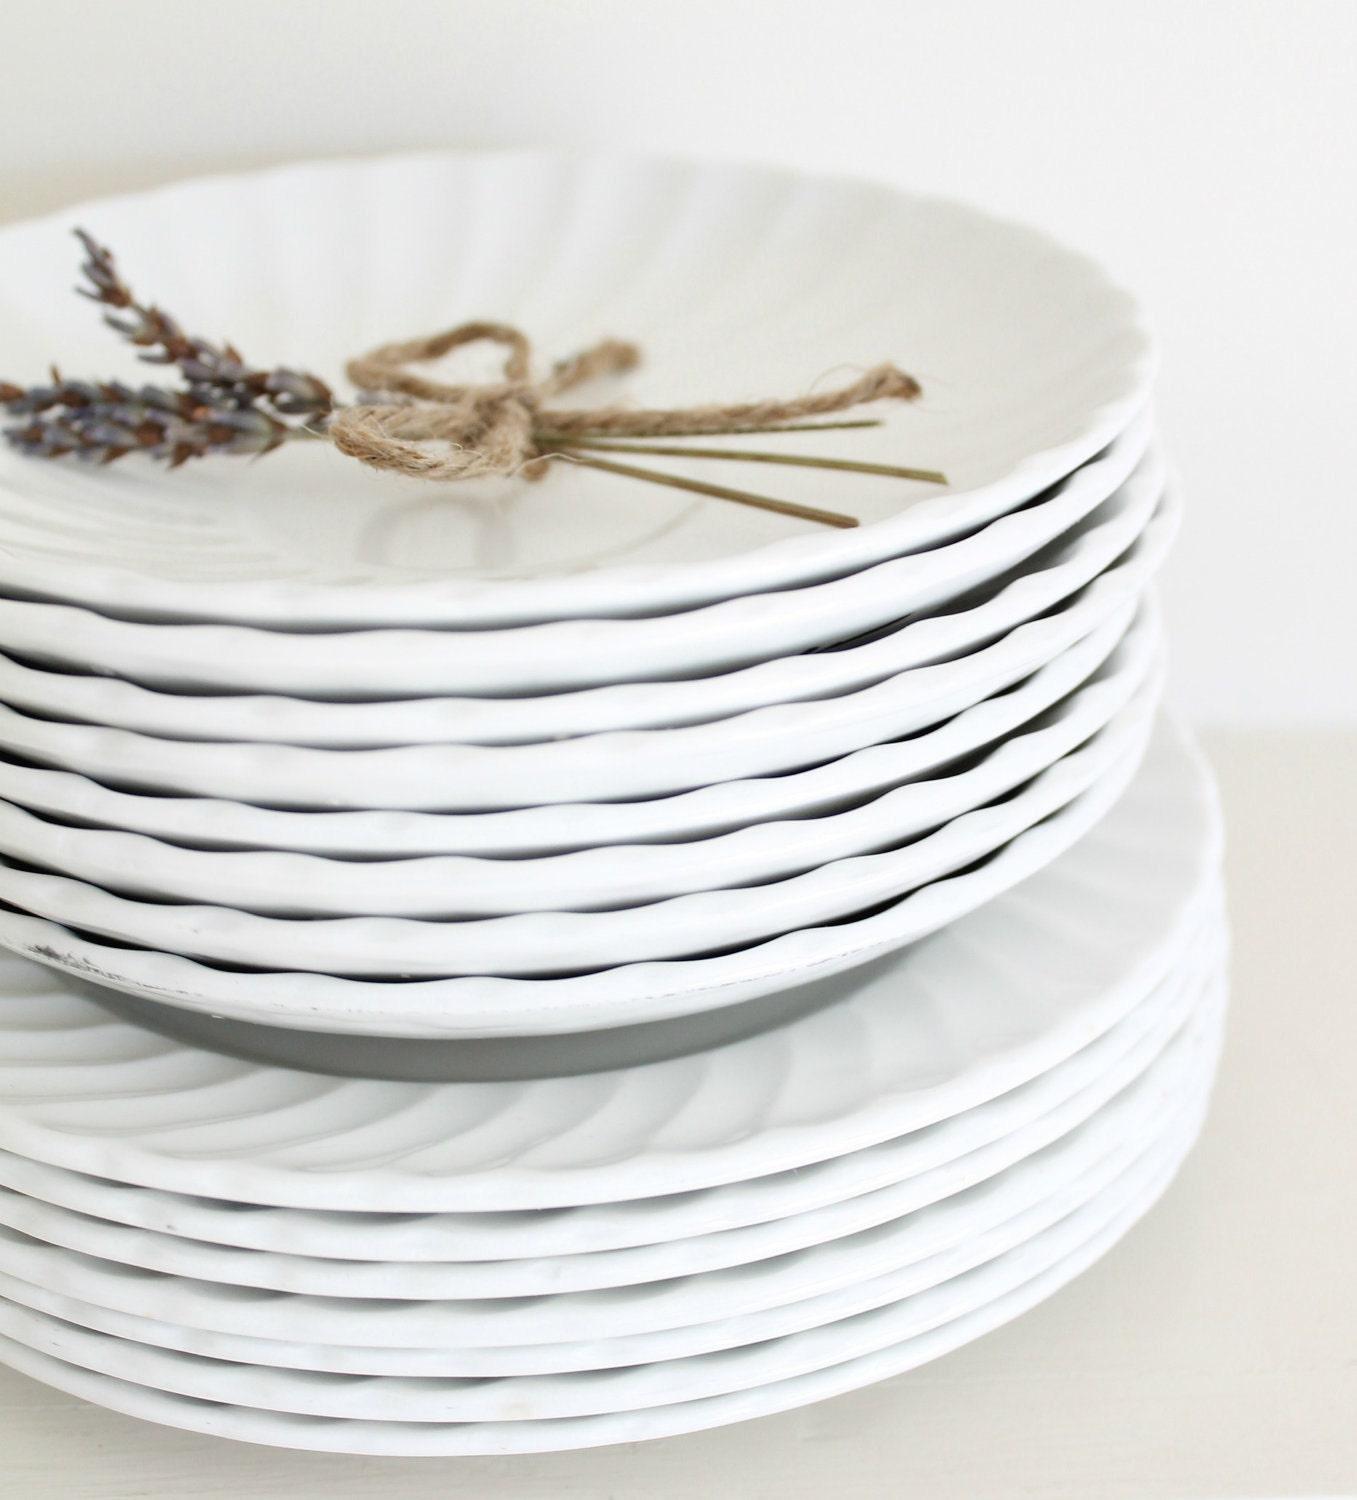 Scalloped English Ironstone Dishes